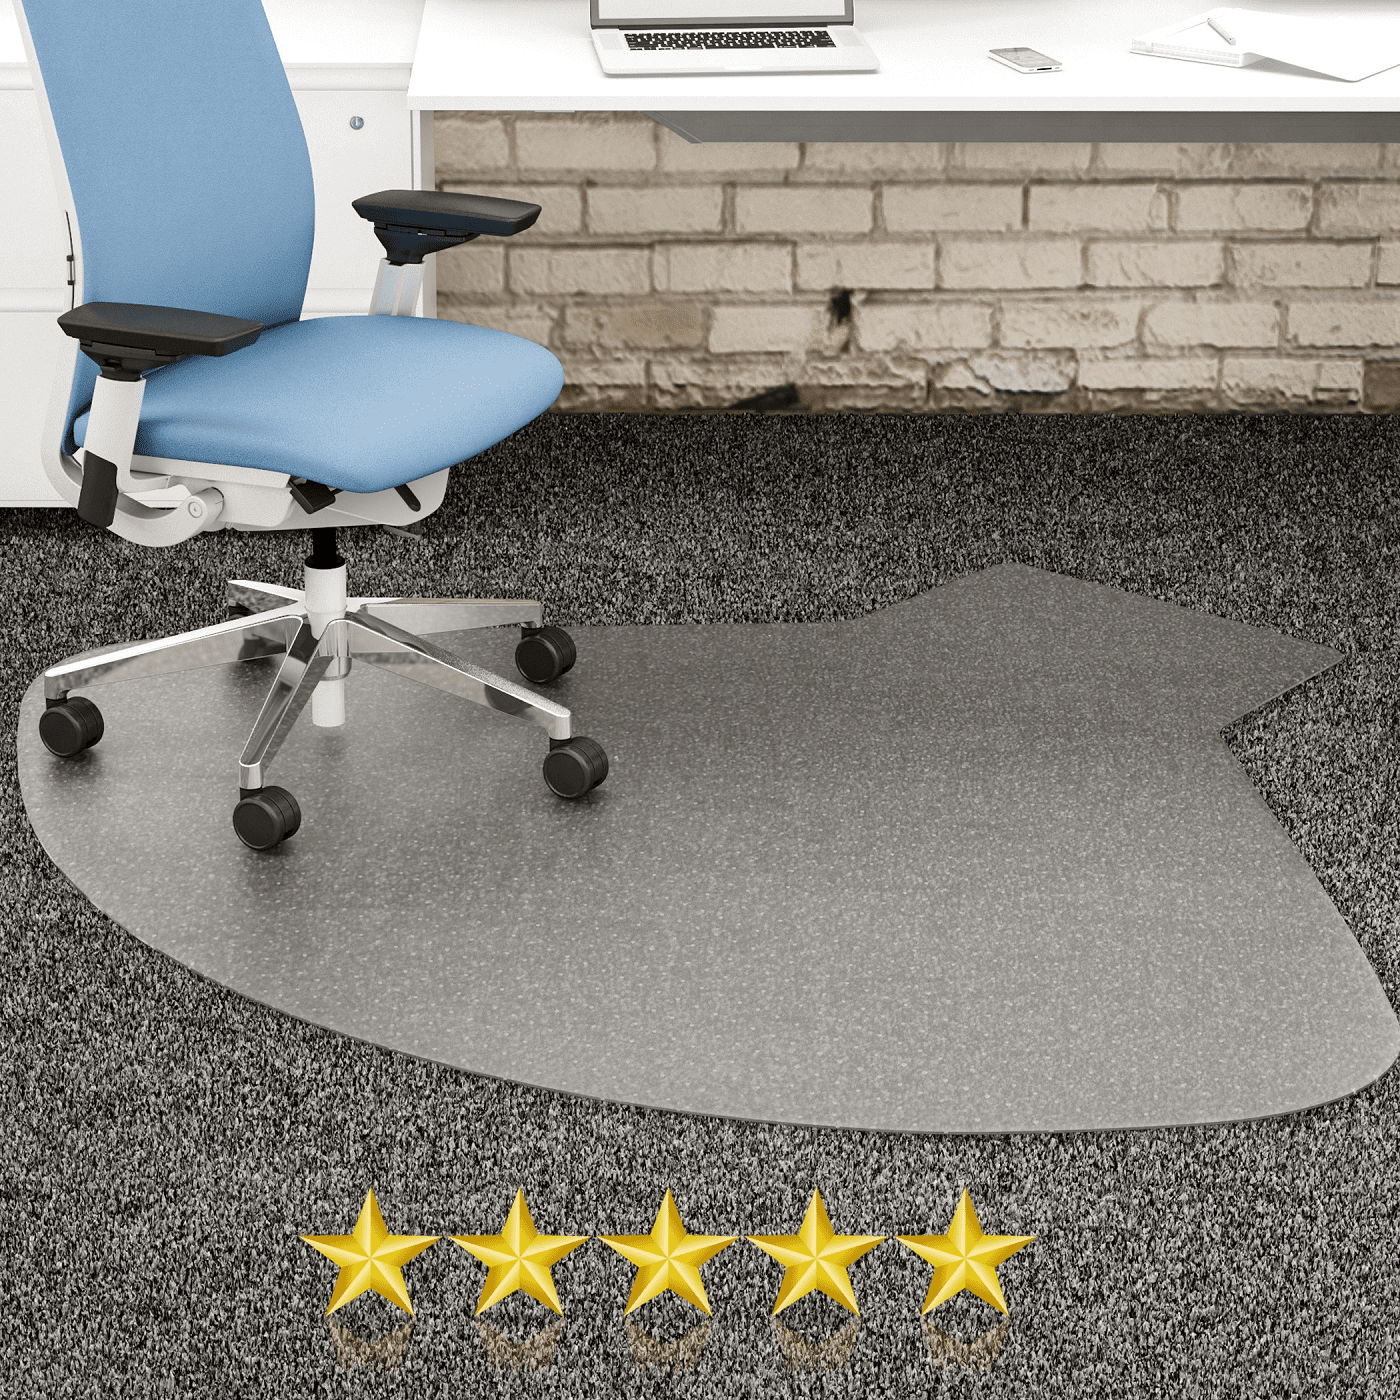 FLOORMATS: TEAR DROP SHAPED. MINIMUM 7 PER ORDER FOR FREE SHIPPING.